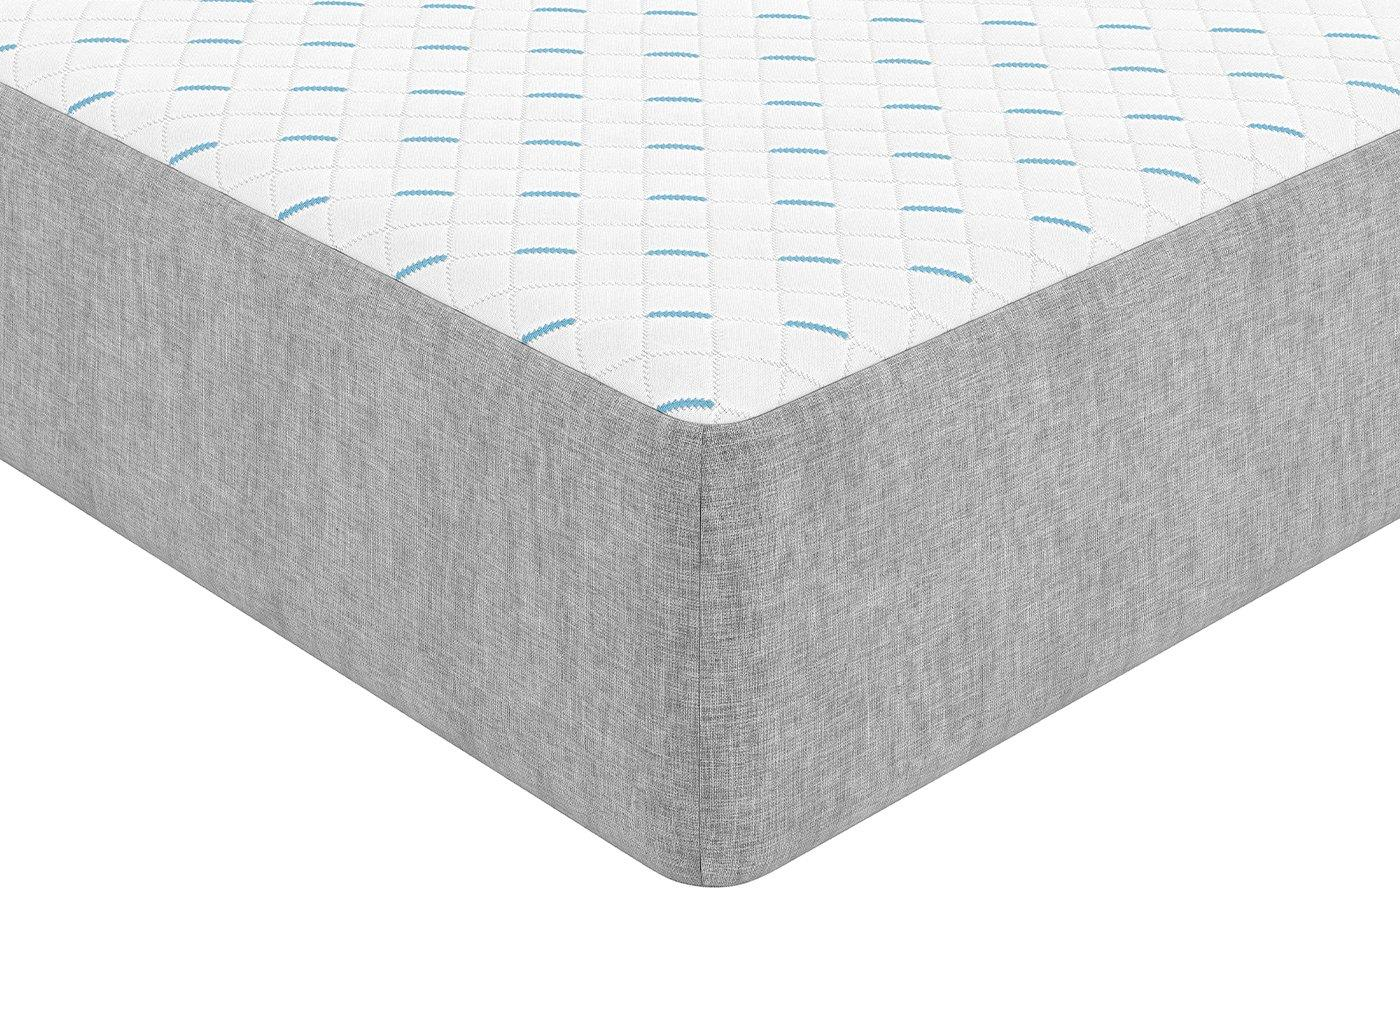 Doze Cora K Mattress 5'0 King